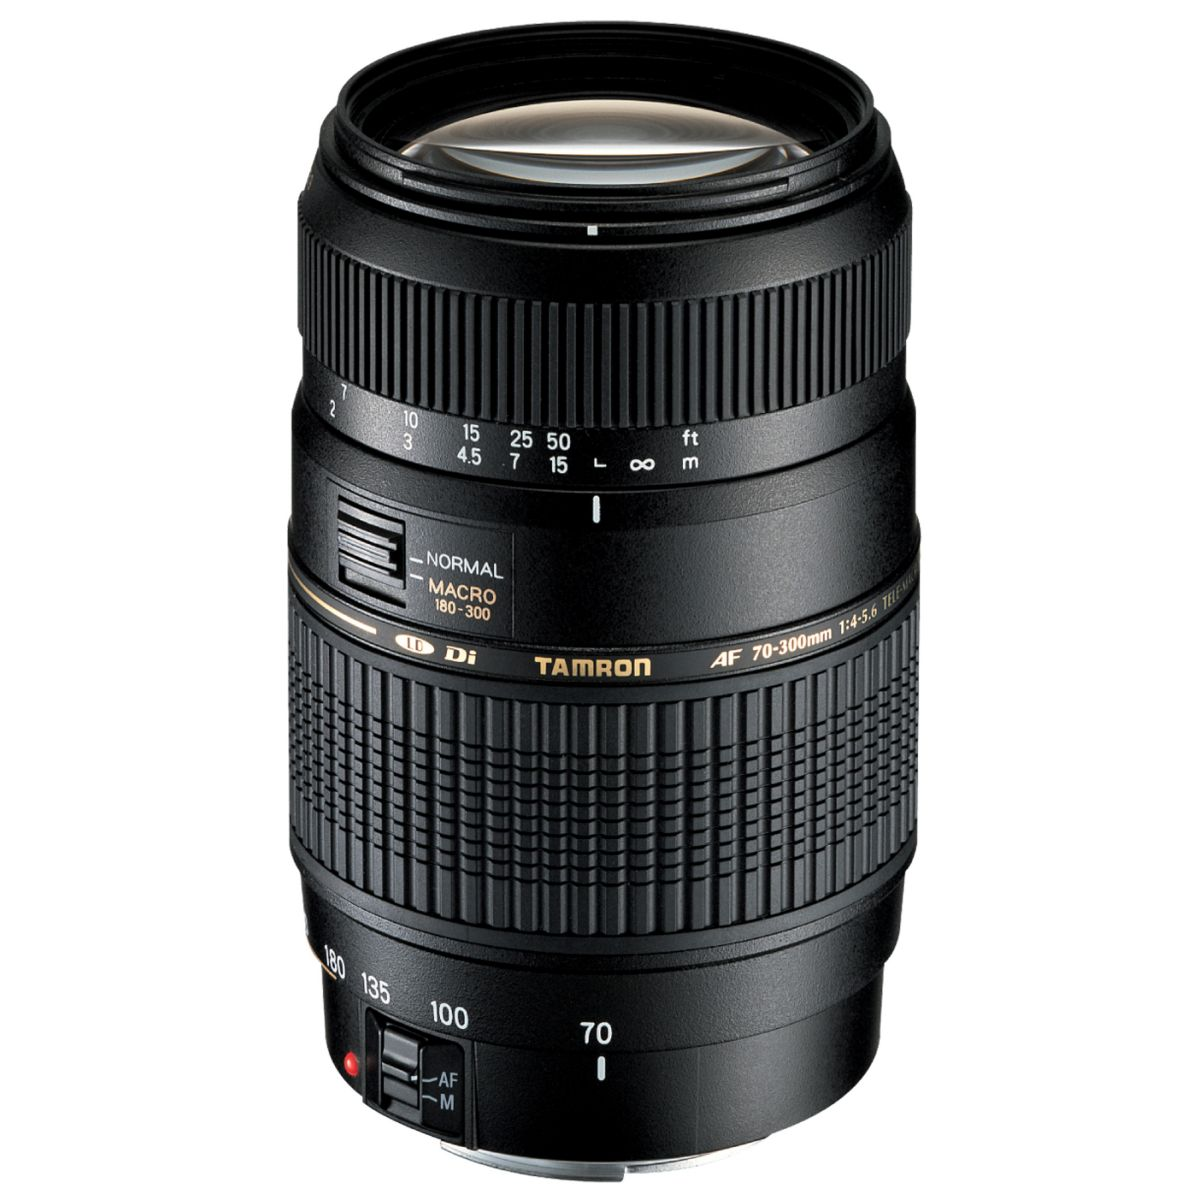 Objectif pour reflex tamron af 70-300mm f/4-5.6 di ld if 1:2 canon